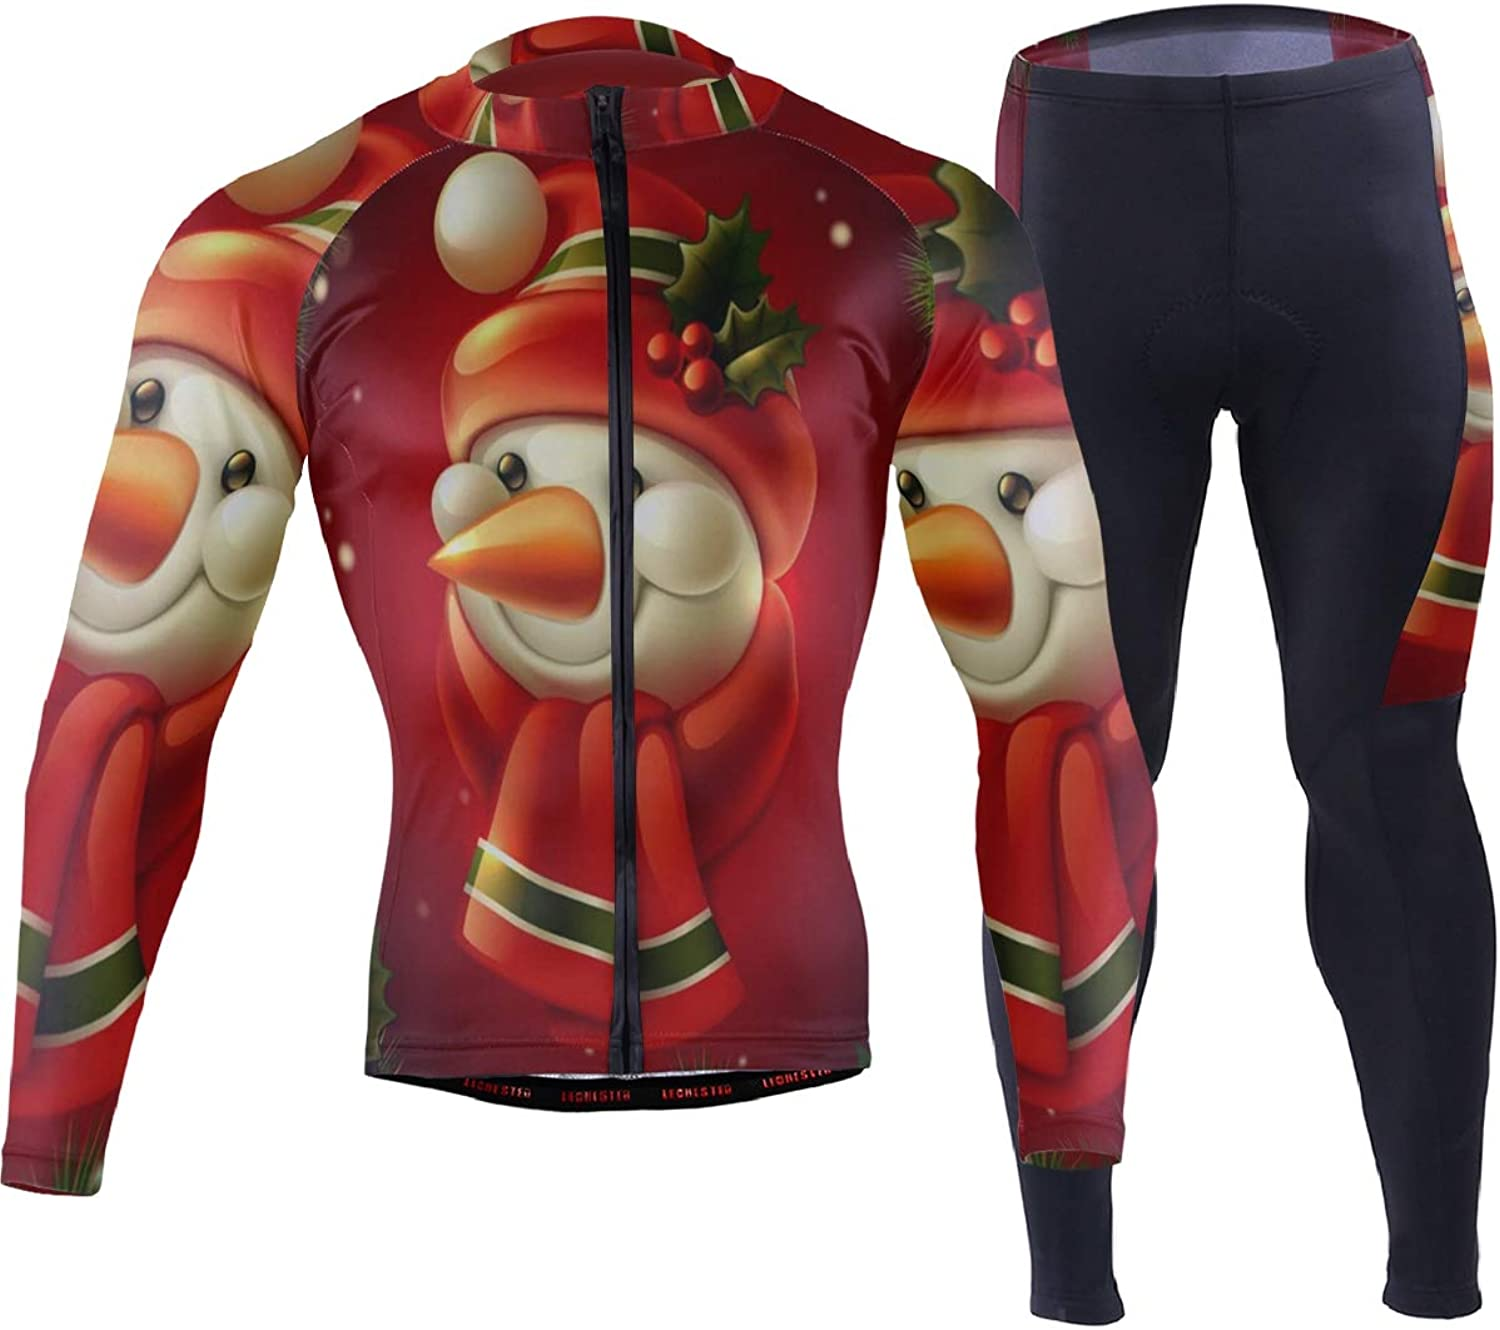 Christmas Snowman Tree Mens Cycling Jersey Suit Full Sleeve Road Riding Shirts Britches Clothing Outfit